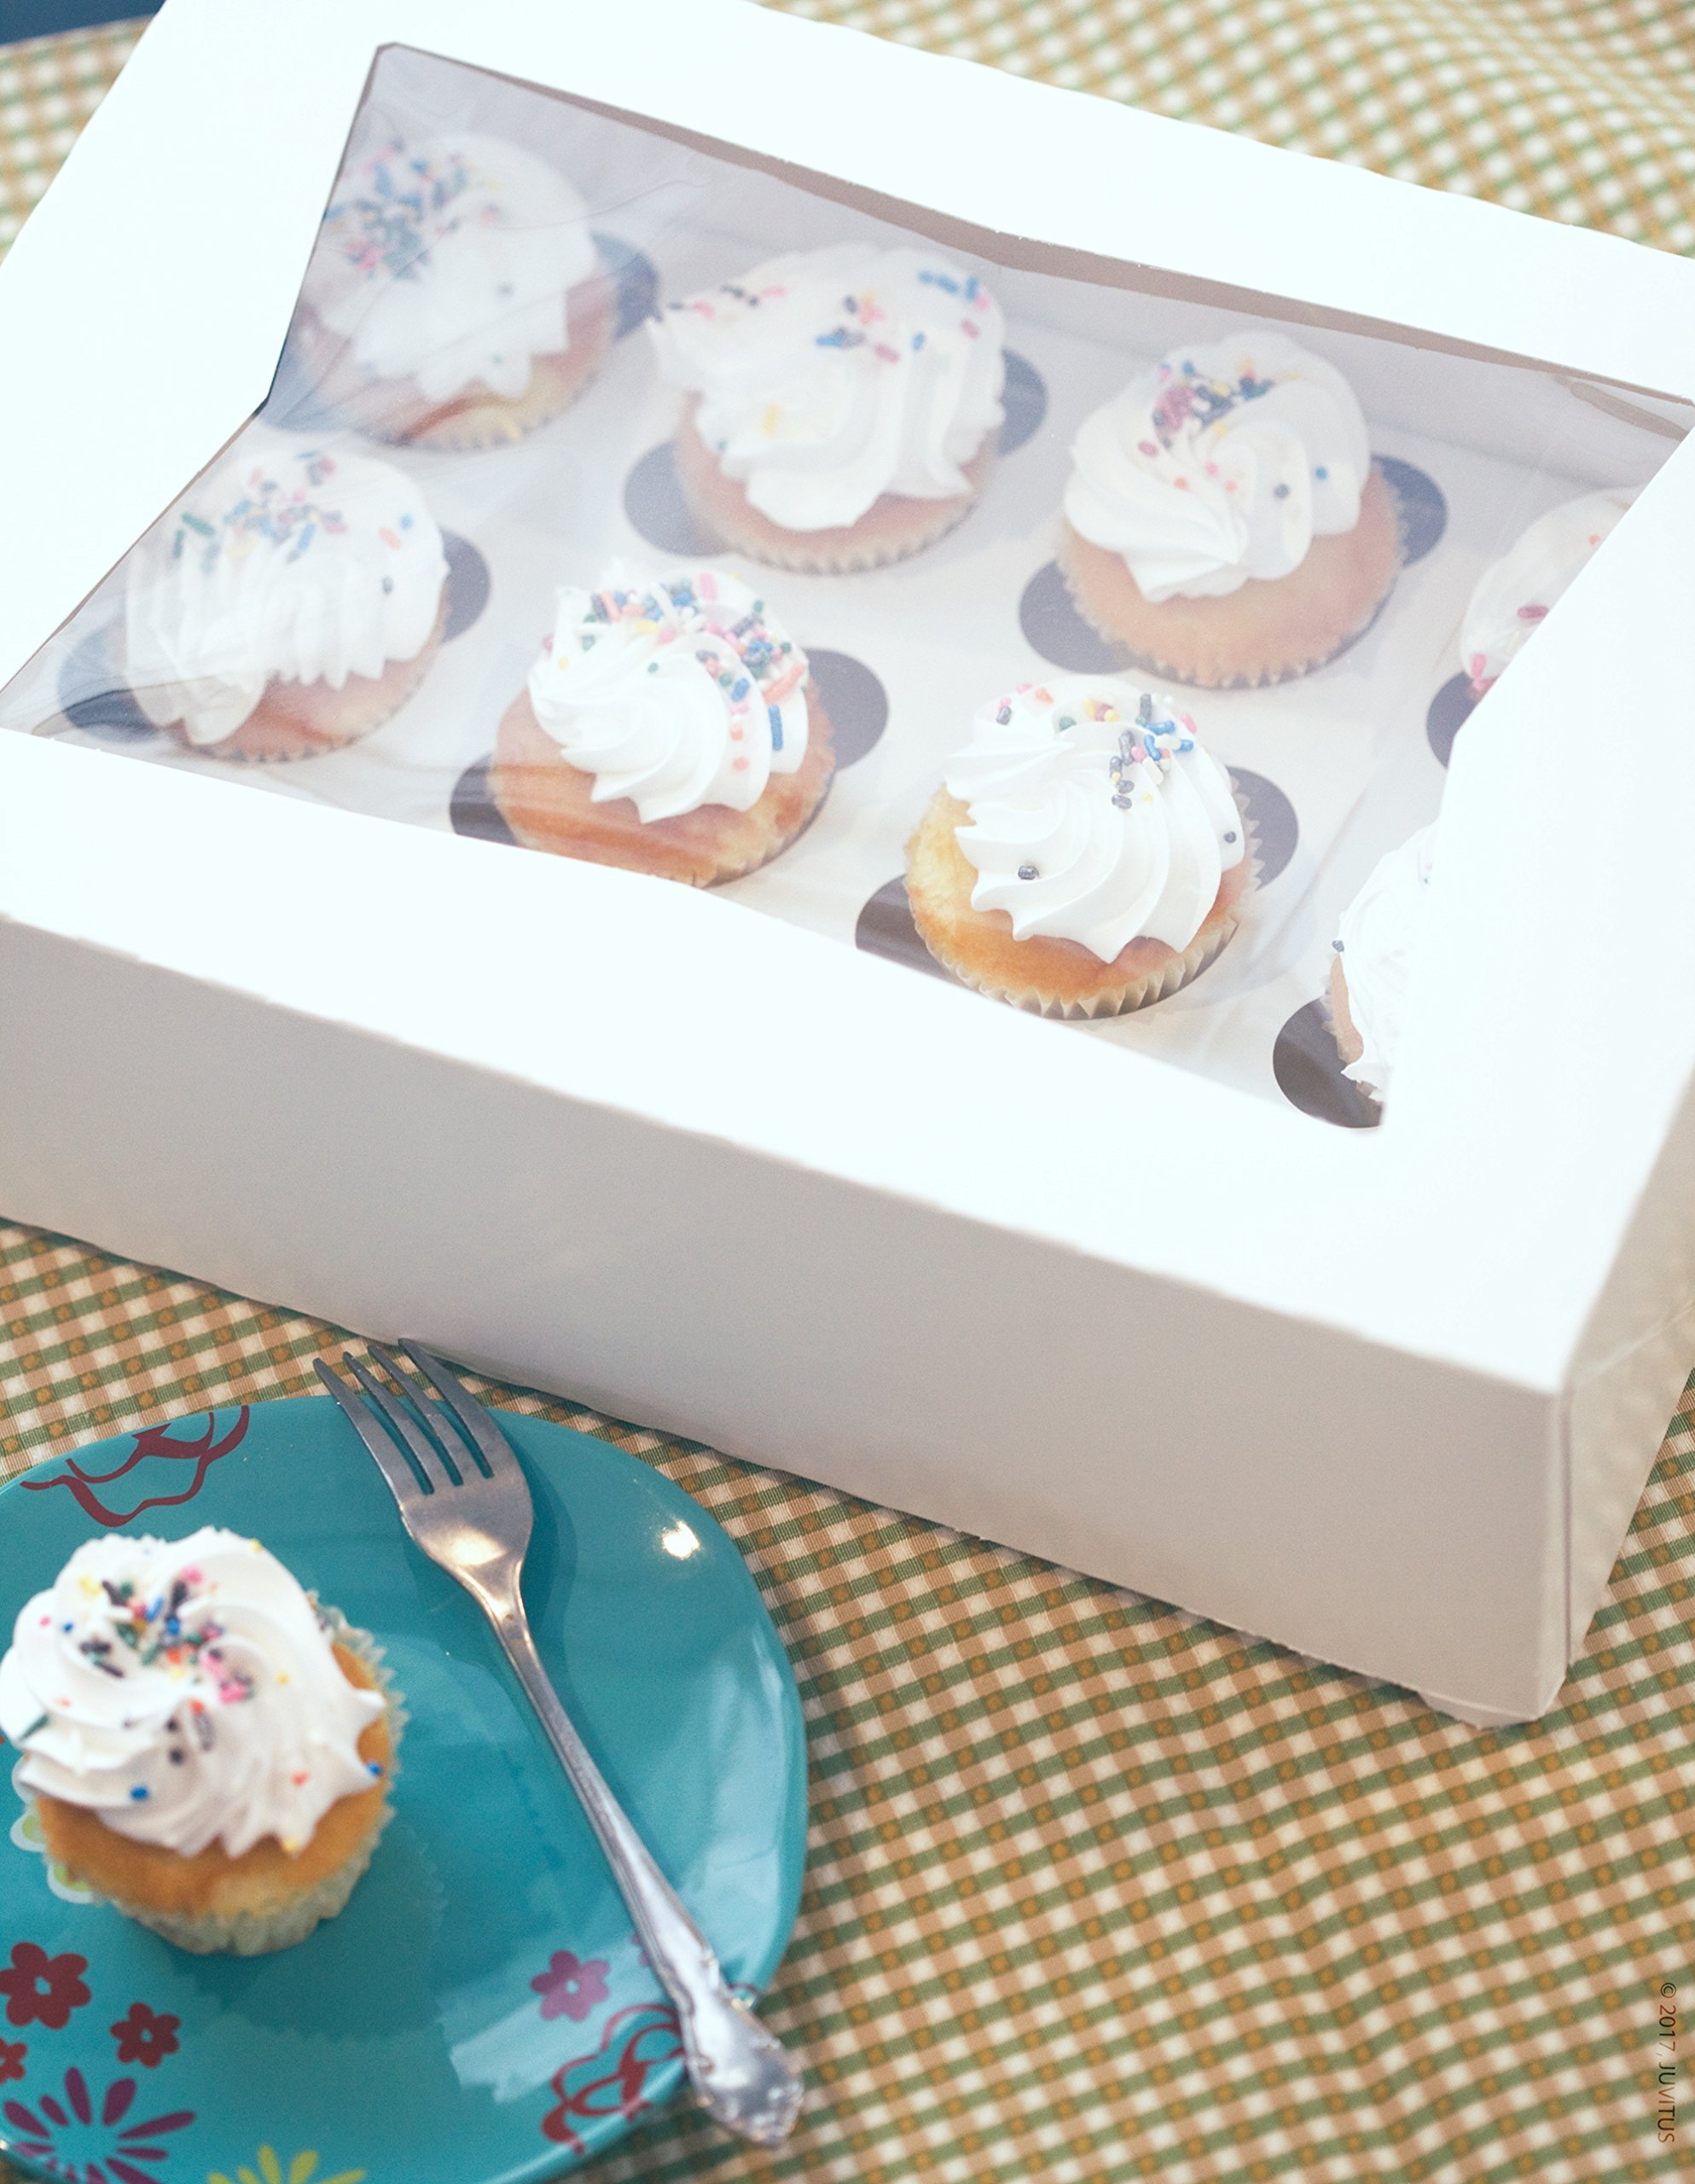 24 PACK - Professional White Cupcake Bakery Box with Clear See Through Window - Holds 12 Cupcakes/Inserts Included